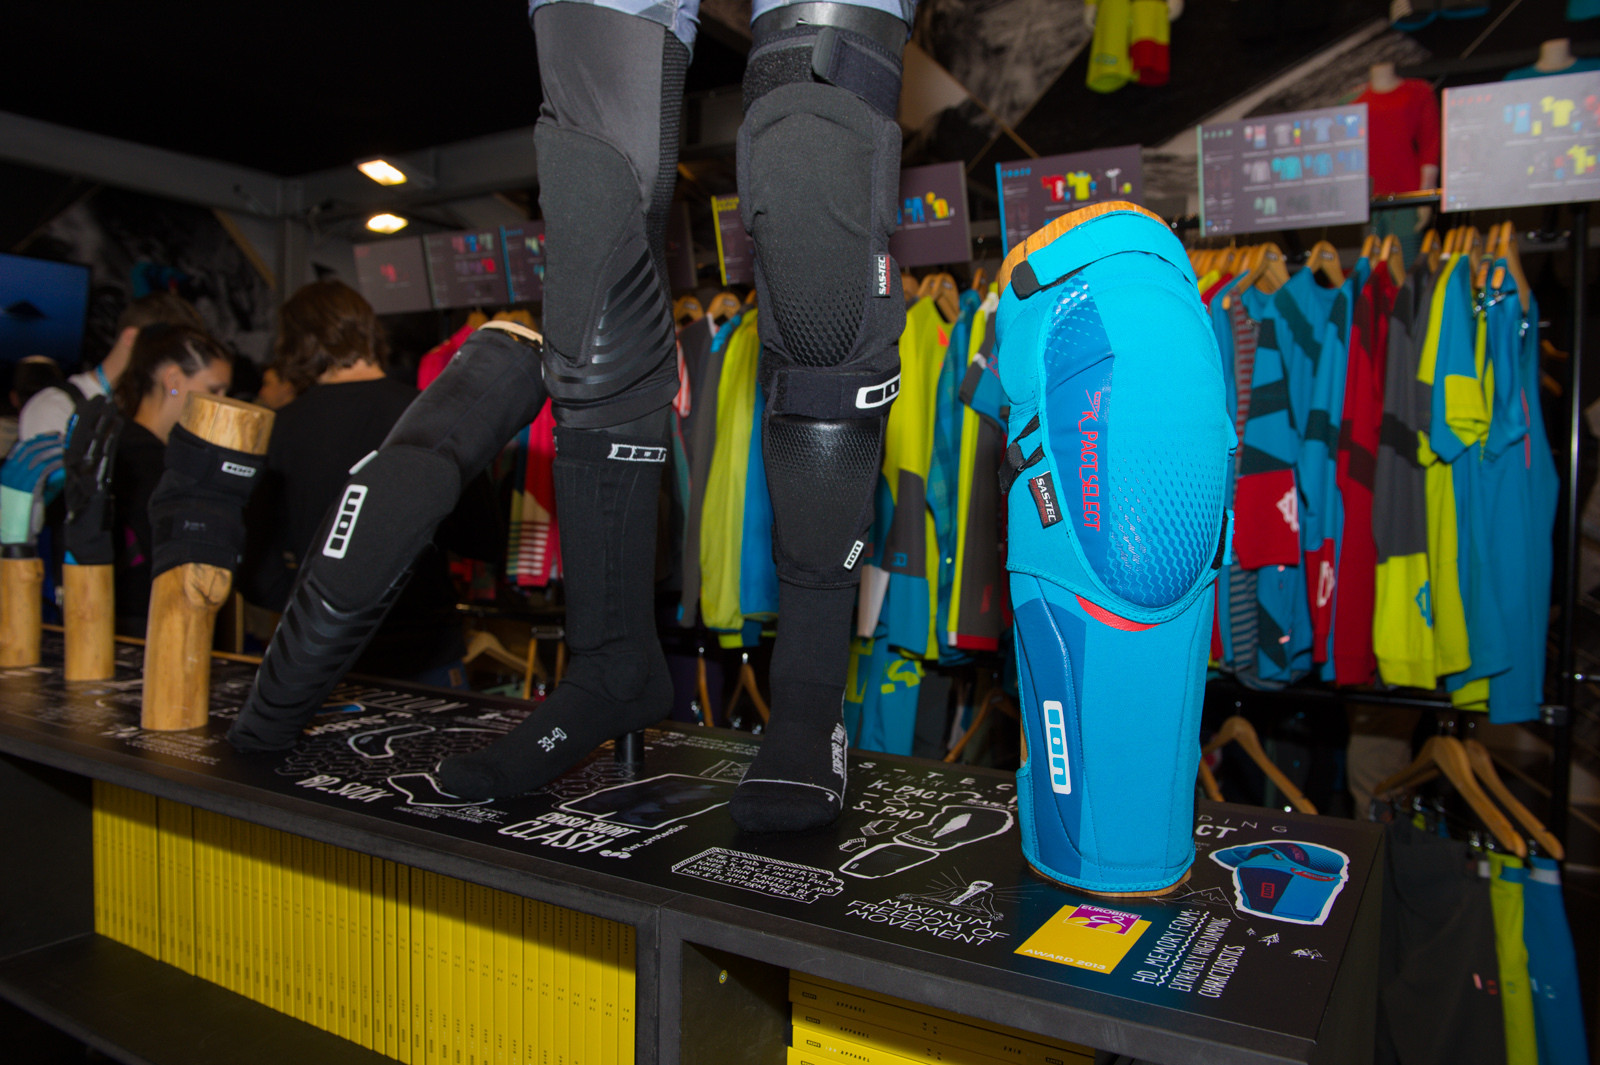 ION K_Pact_Select Pads - 2014 Mountain Bike Apparel & Protection at Eurobike 2013 - Mountain Biking Pictures - Vital MTB